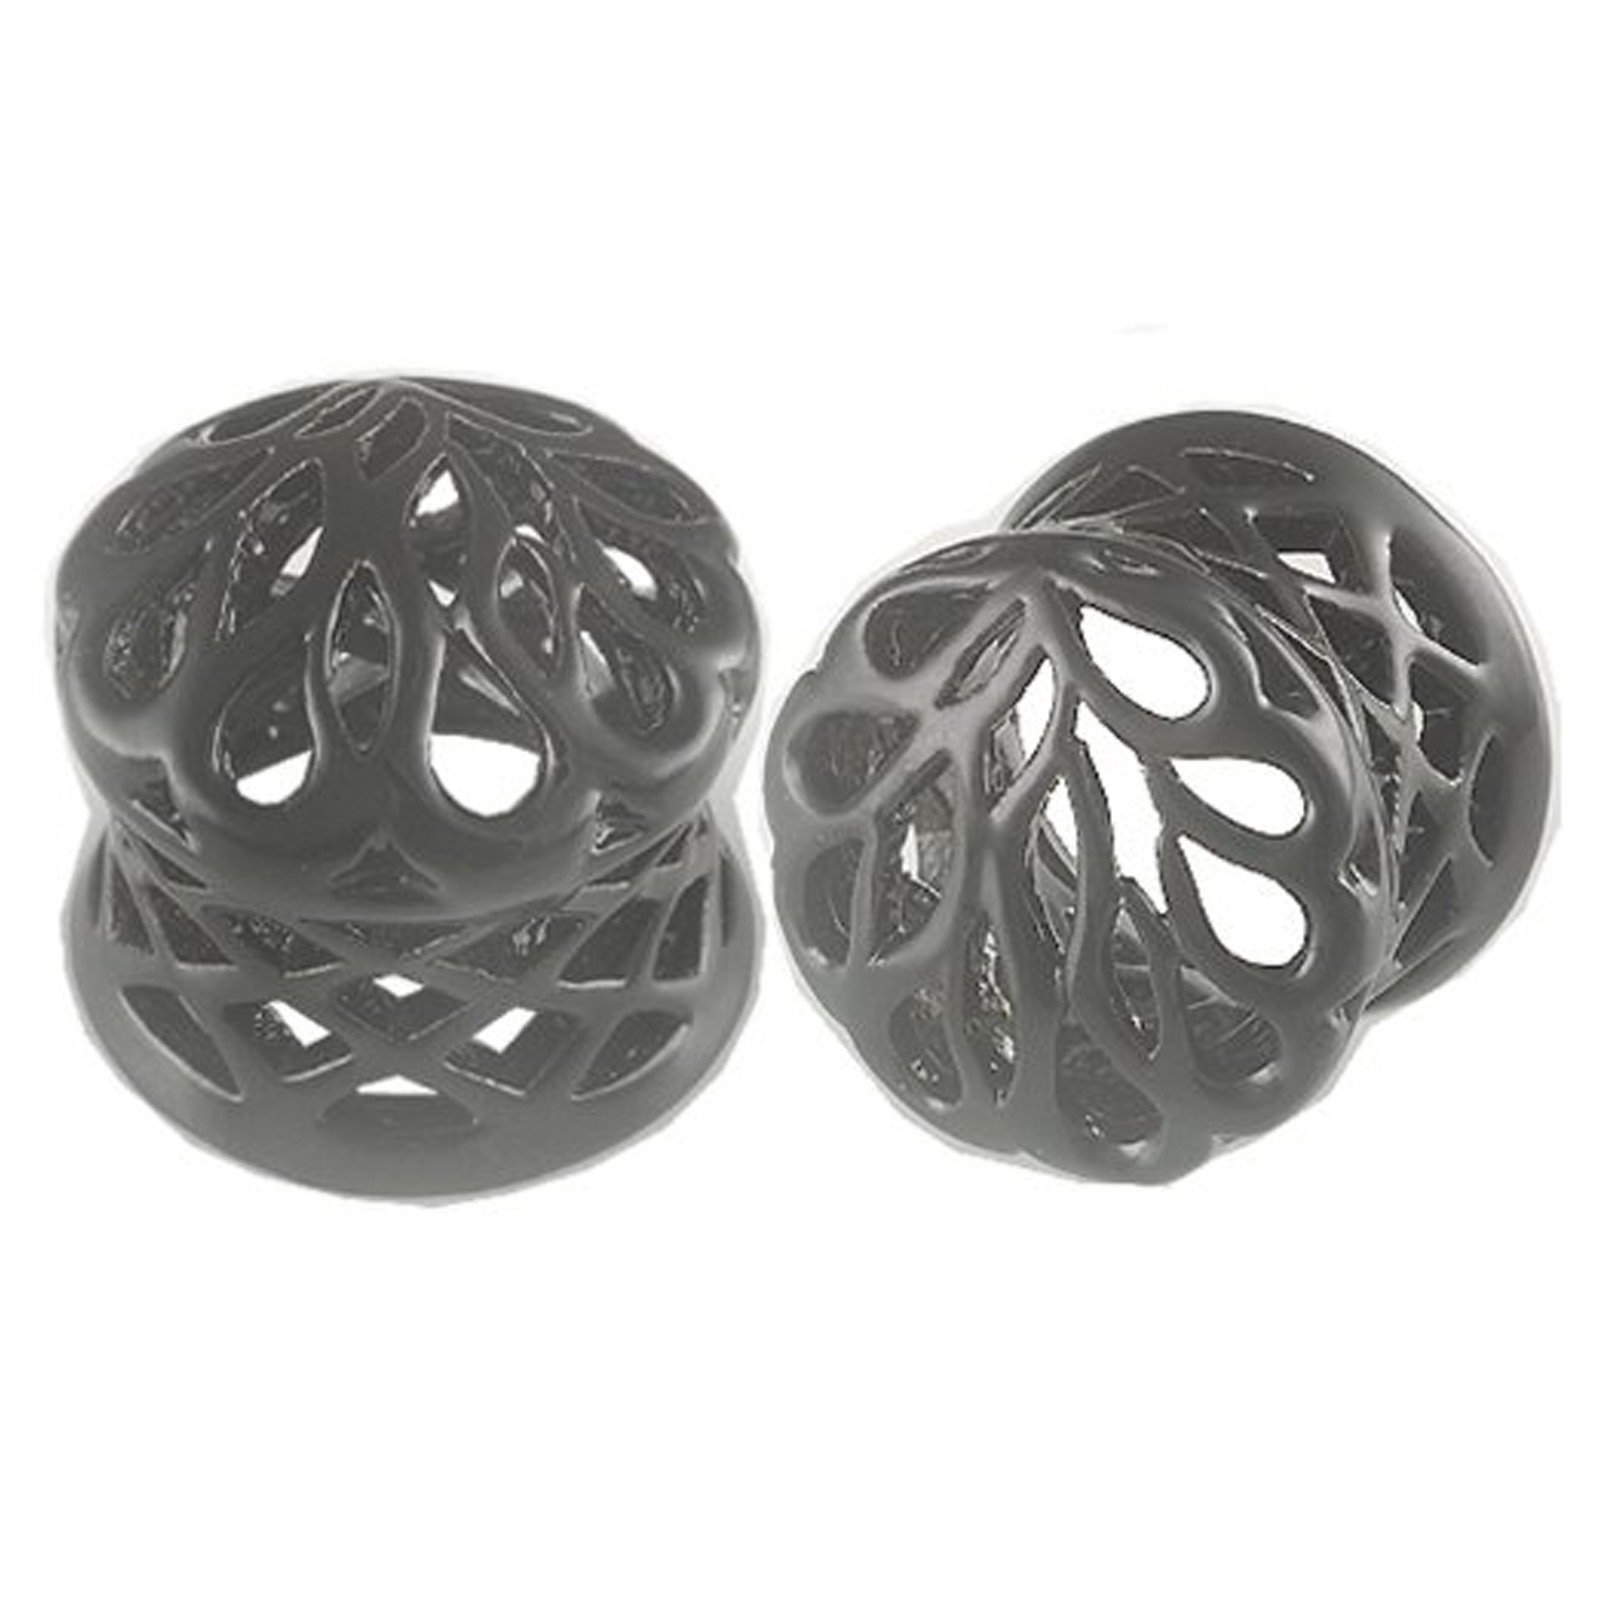 1/2'' Inch (12mm) Black Alloy Double Flared Ear Plugs - Sold as a Pair